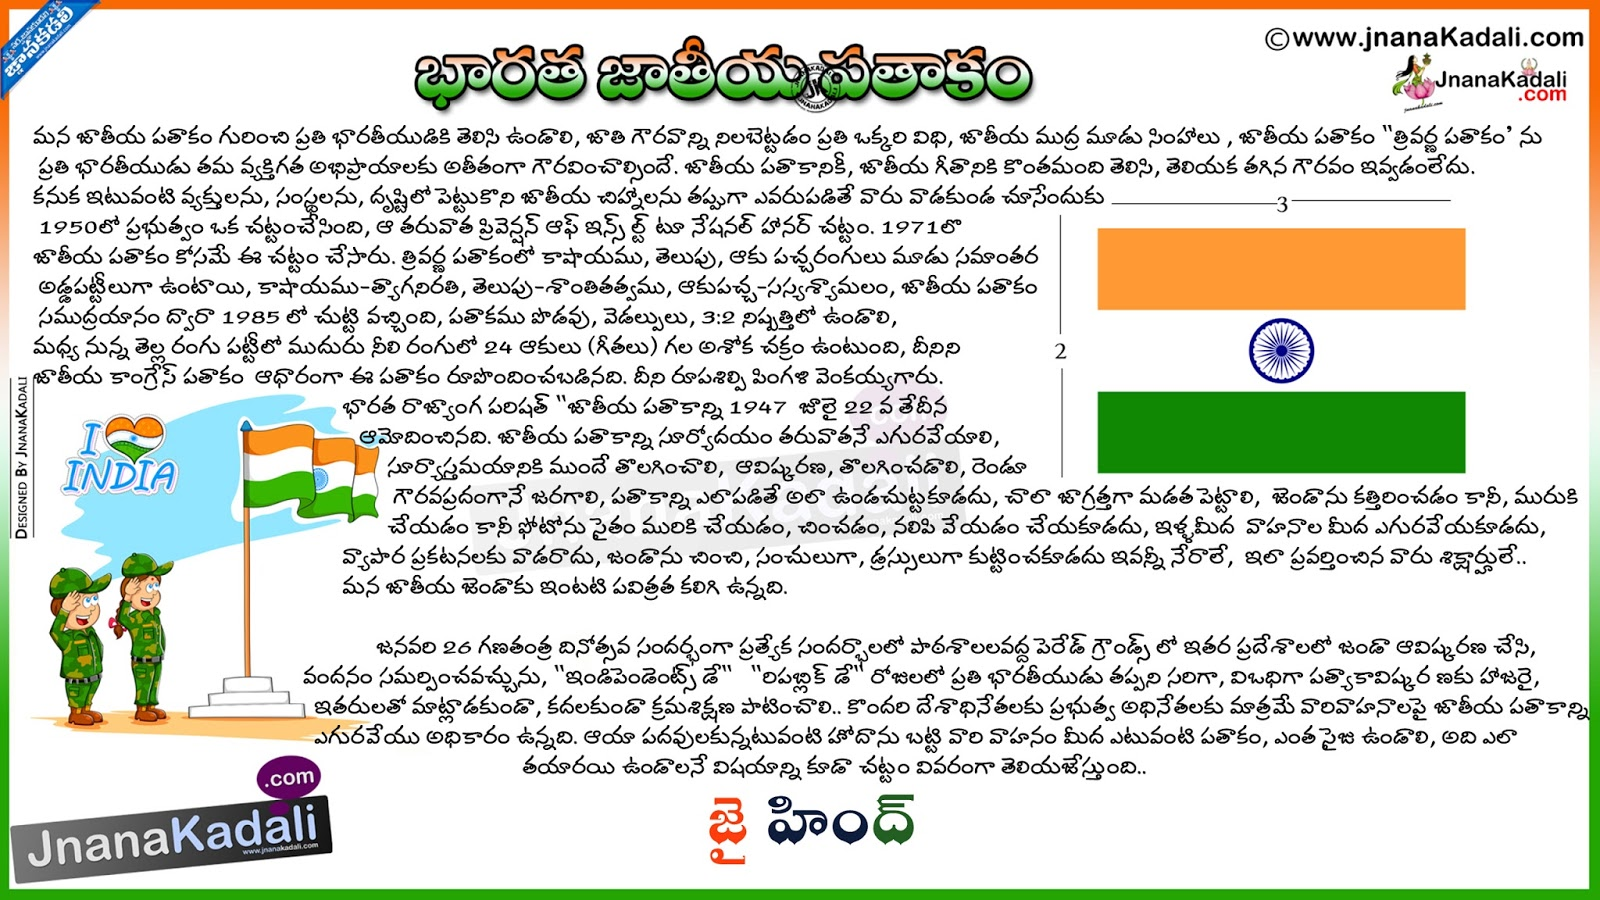 Famous Patriotic Quotes Wallpapers Information Of India Flag Inaugaration Of It And Greatness